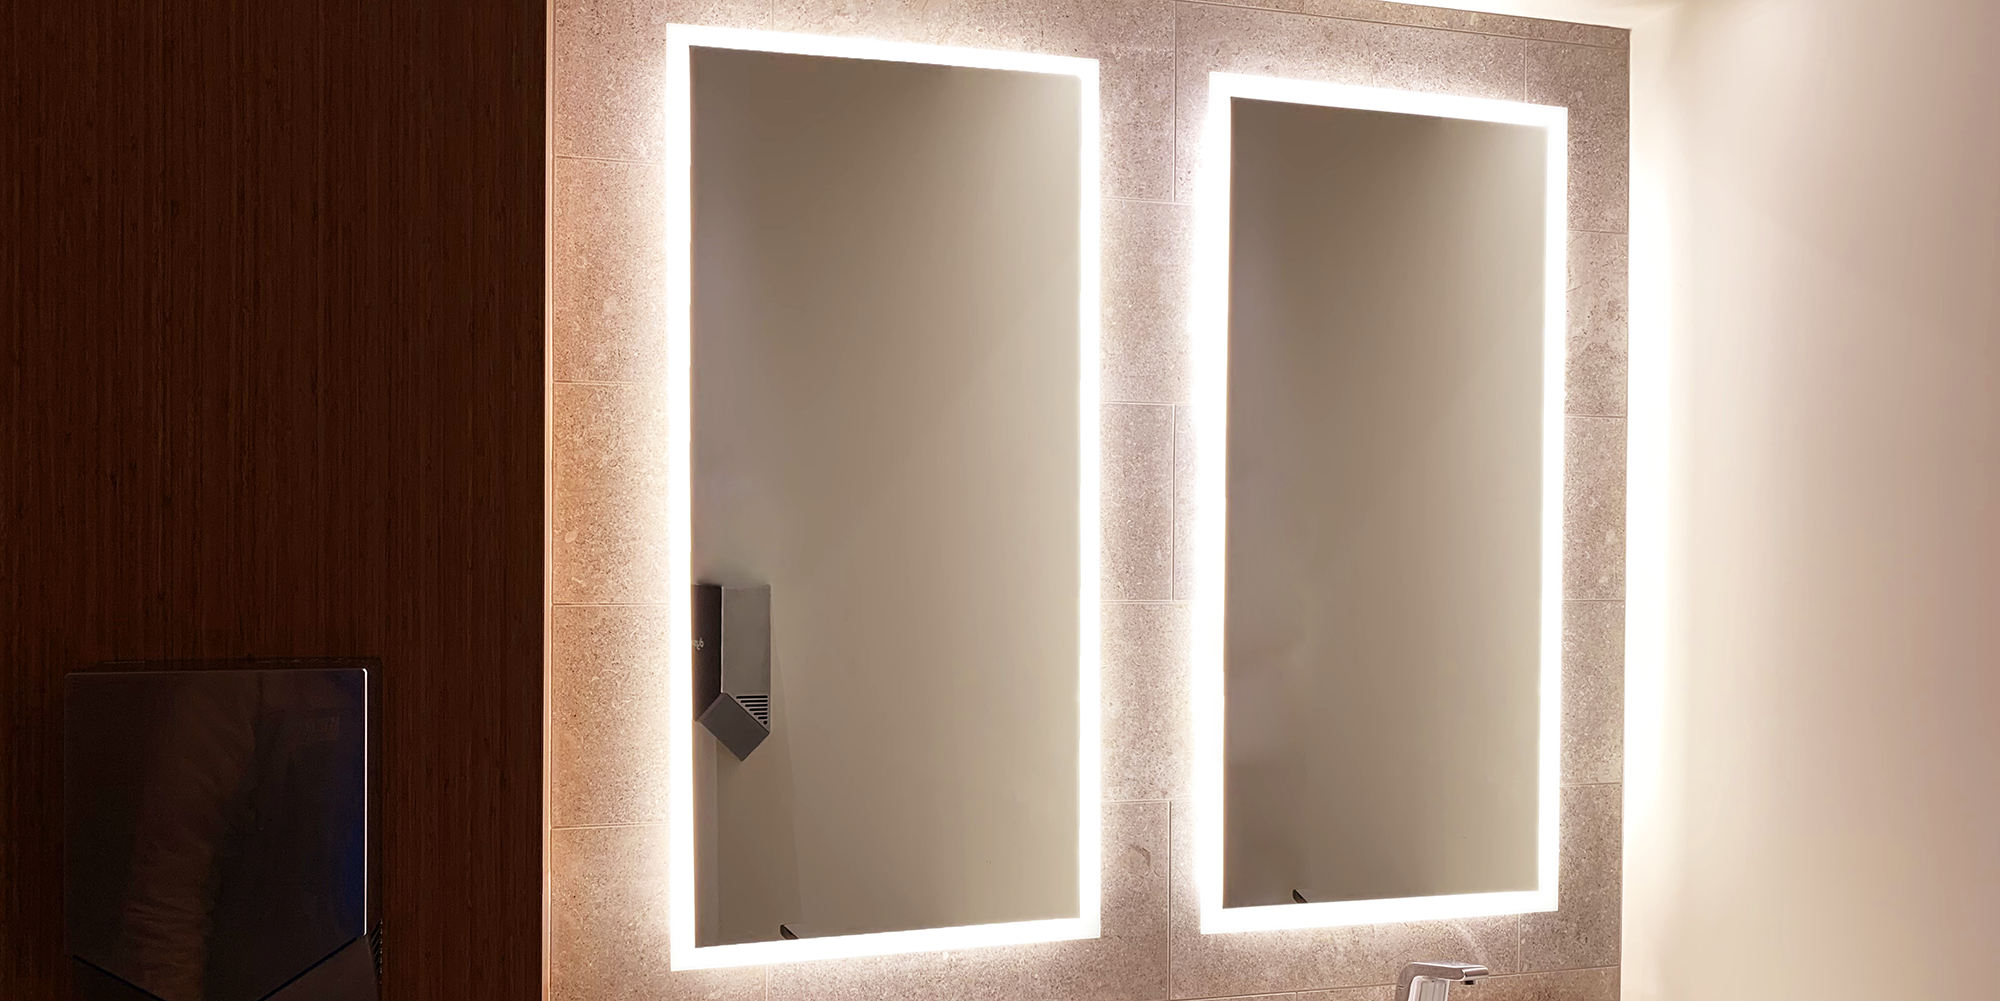 Matrix Mirrors L2 mirrors installed in a commercial bathroom setting. Full frame frost covers the diameter of the mirror. The frost is illuminated with LEDs. The mirrors shine on a bathroom with white walls on the right, a stone tile backsplash, and wood siding on the left.